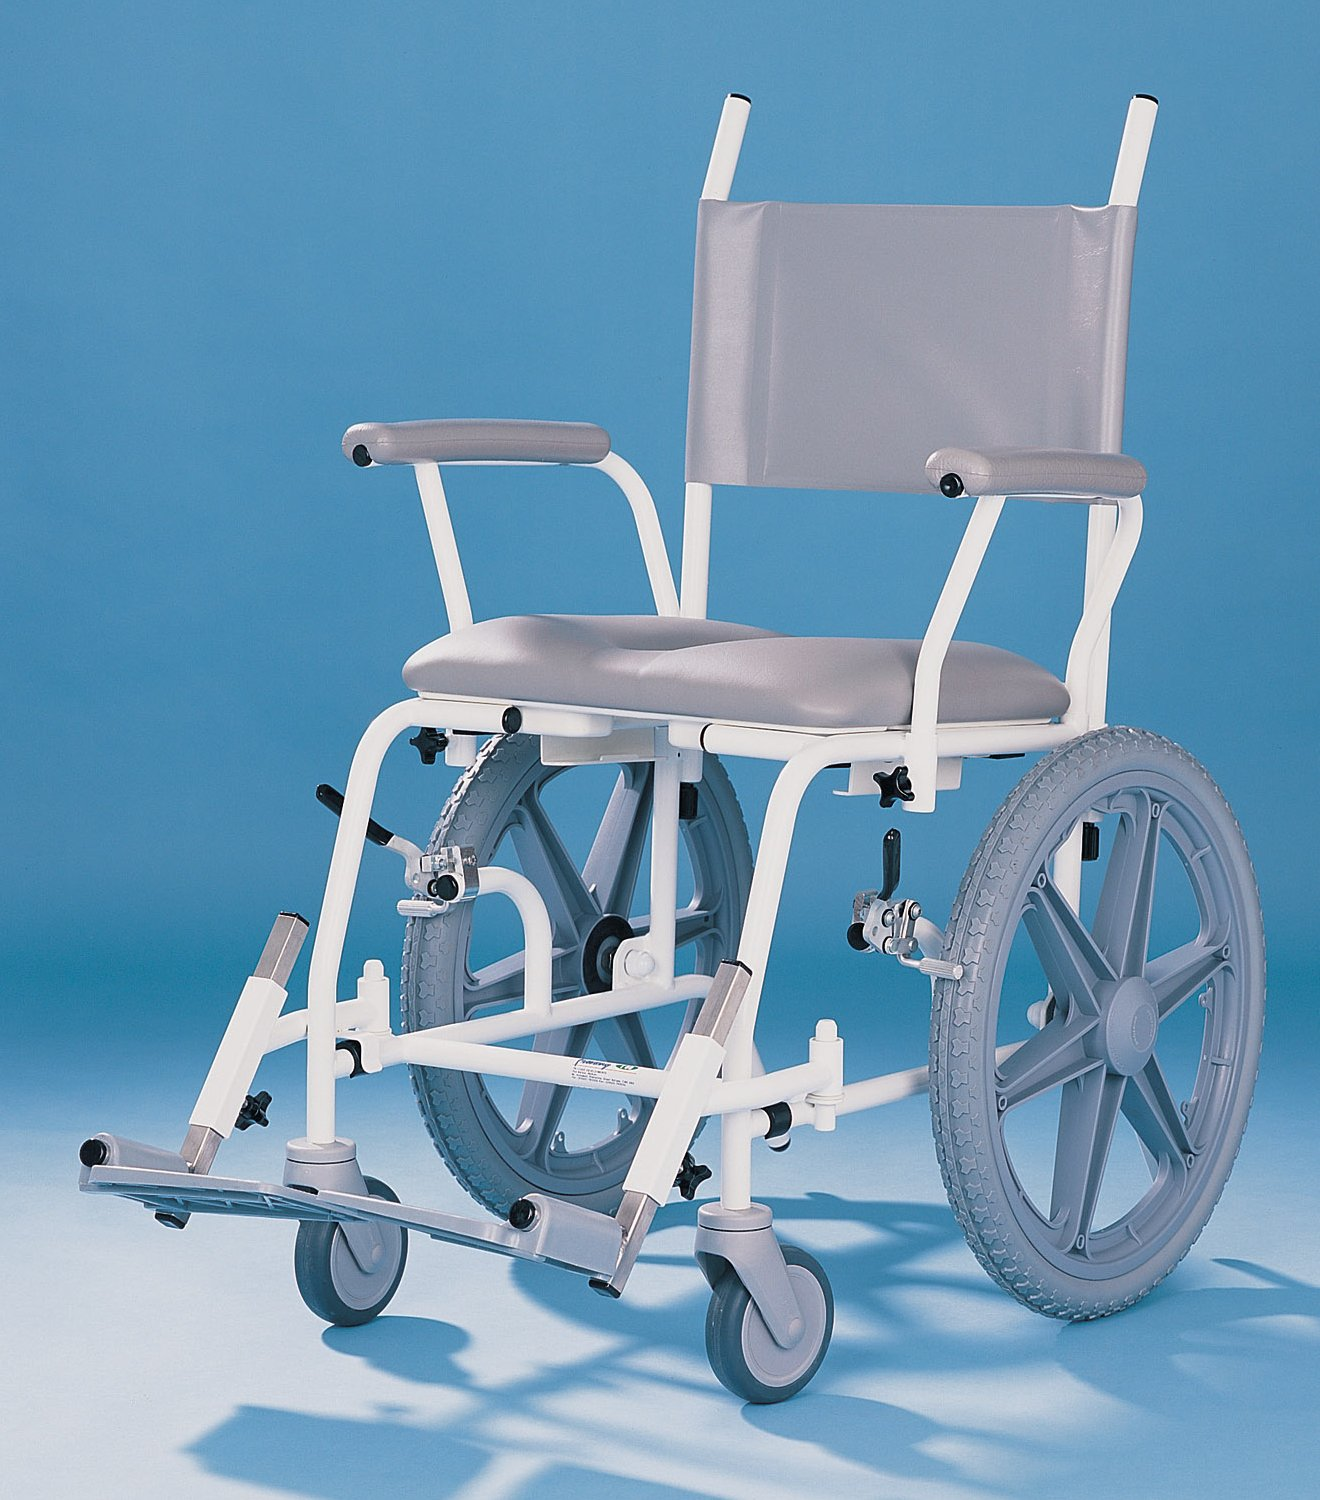 Freeway T60 Shower Chair - Living made easy